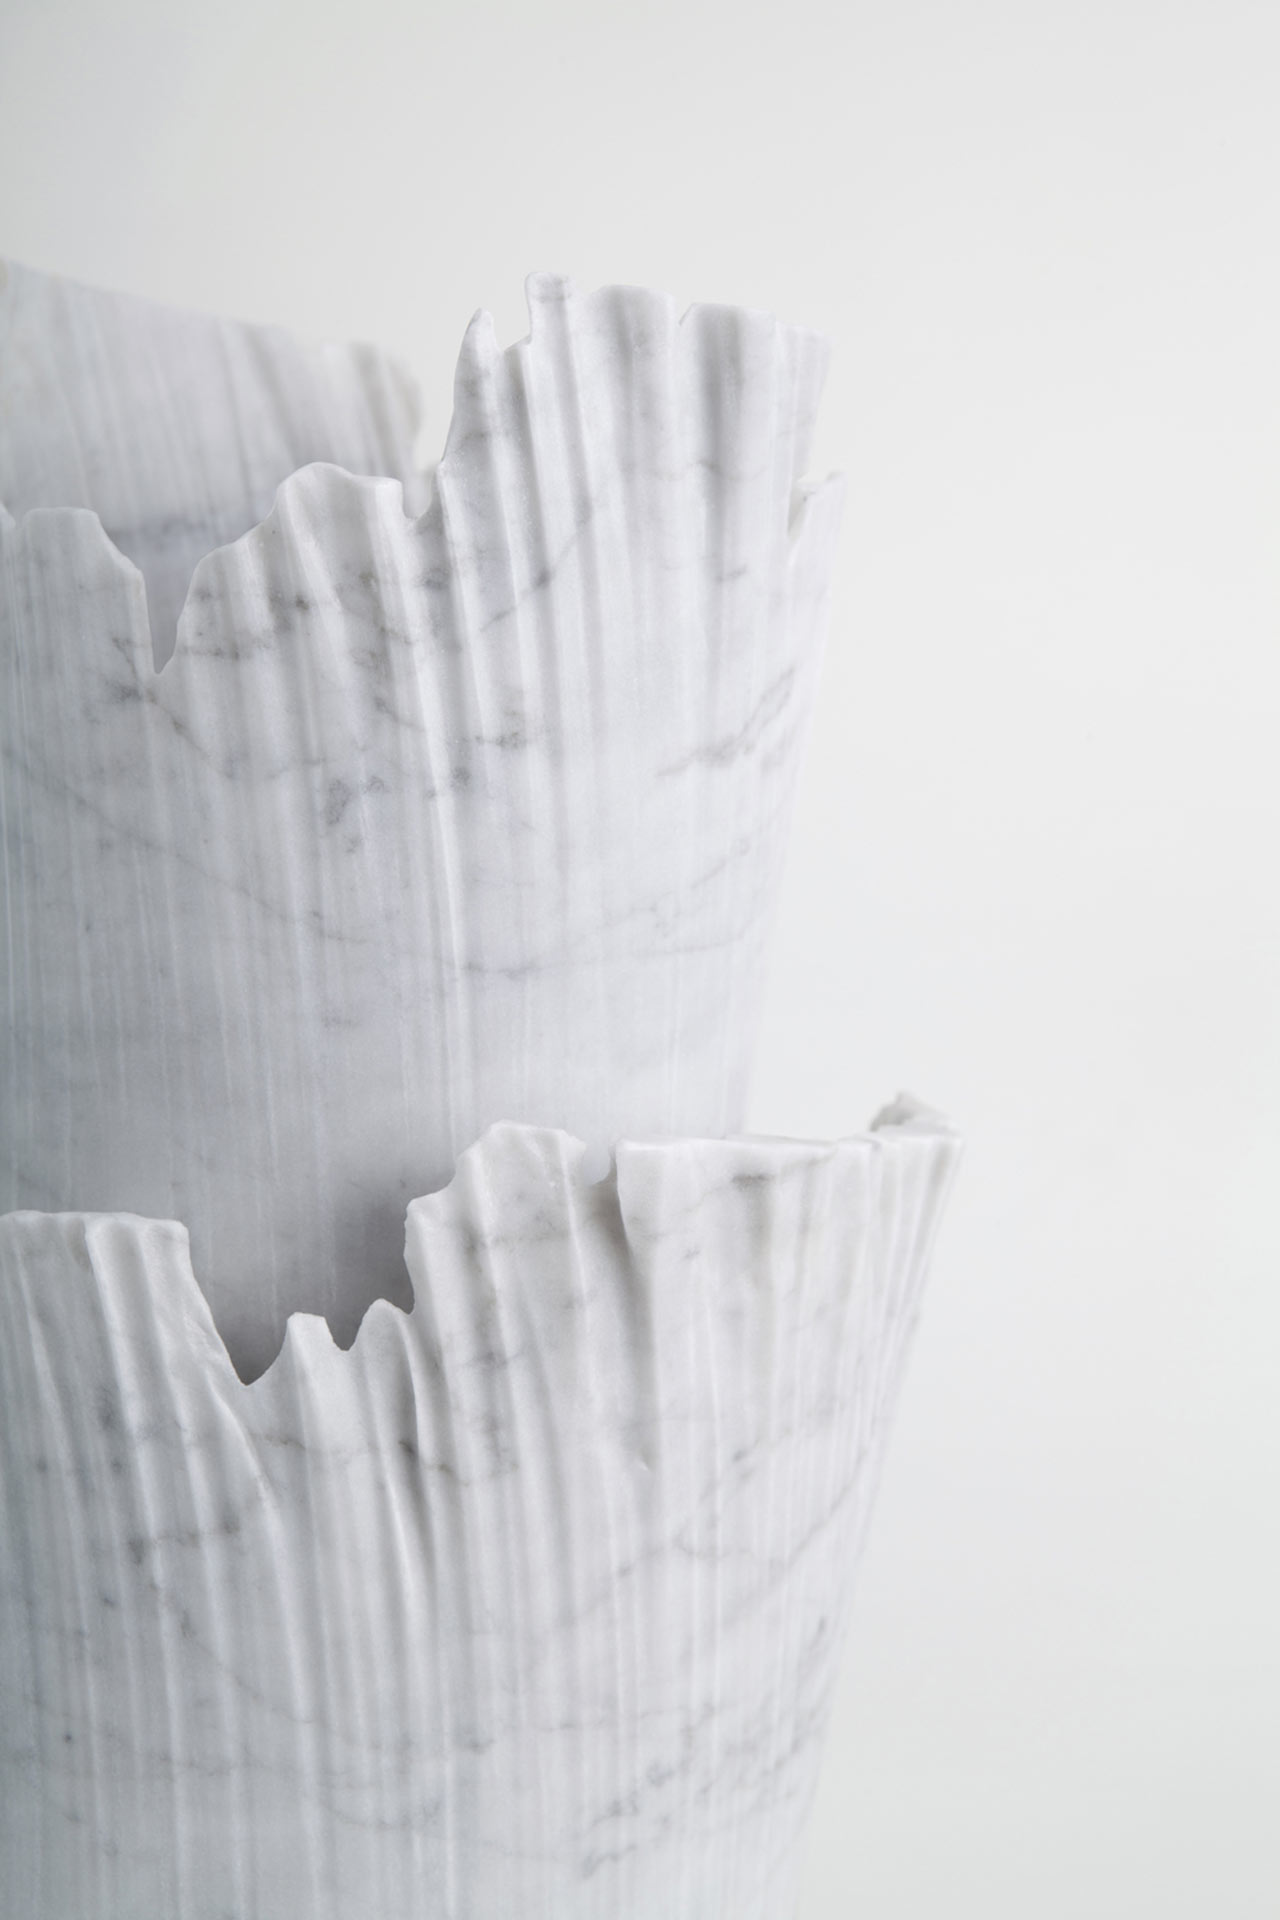 monolith-water-erosion-marble-10